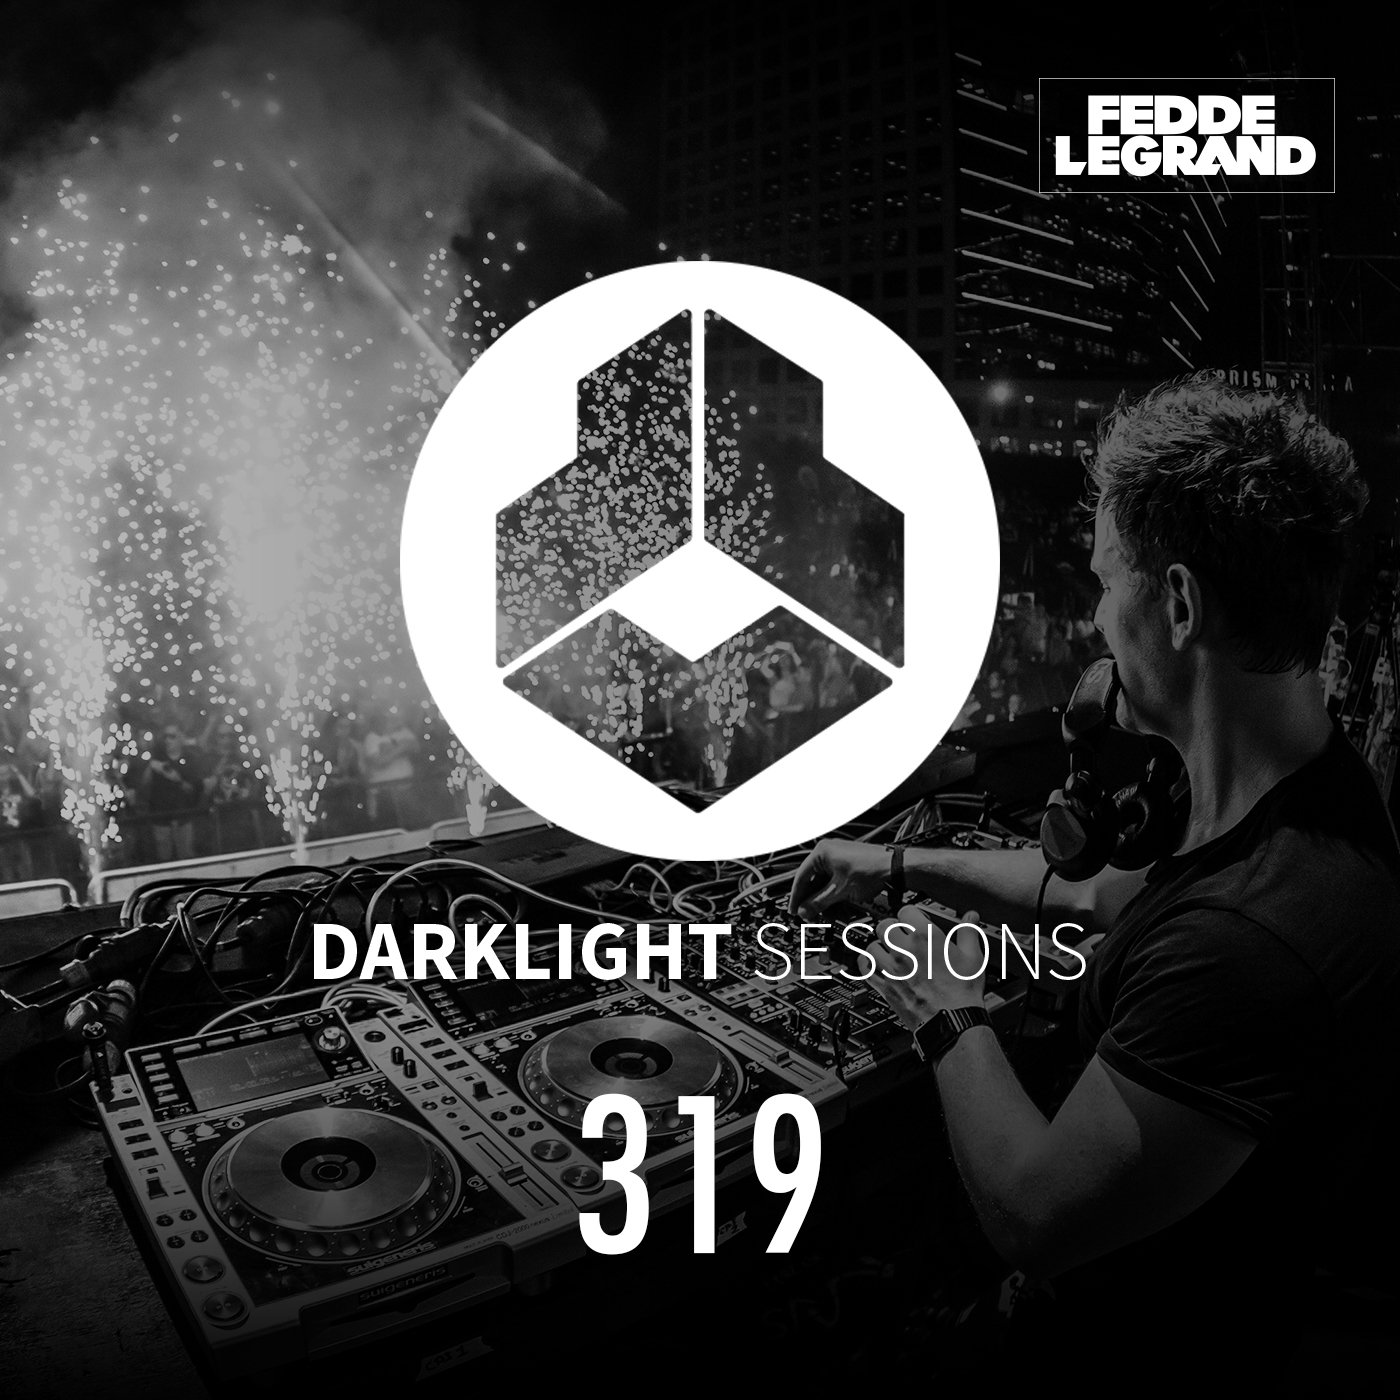 Darklight Sessions 319